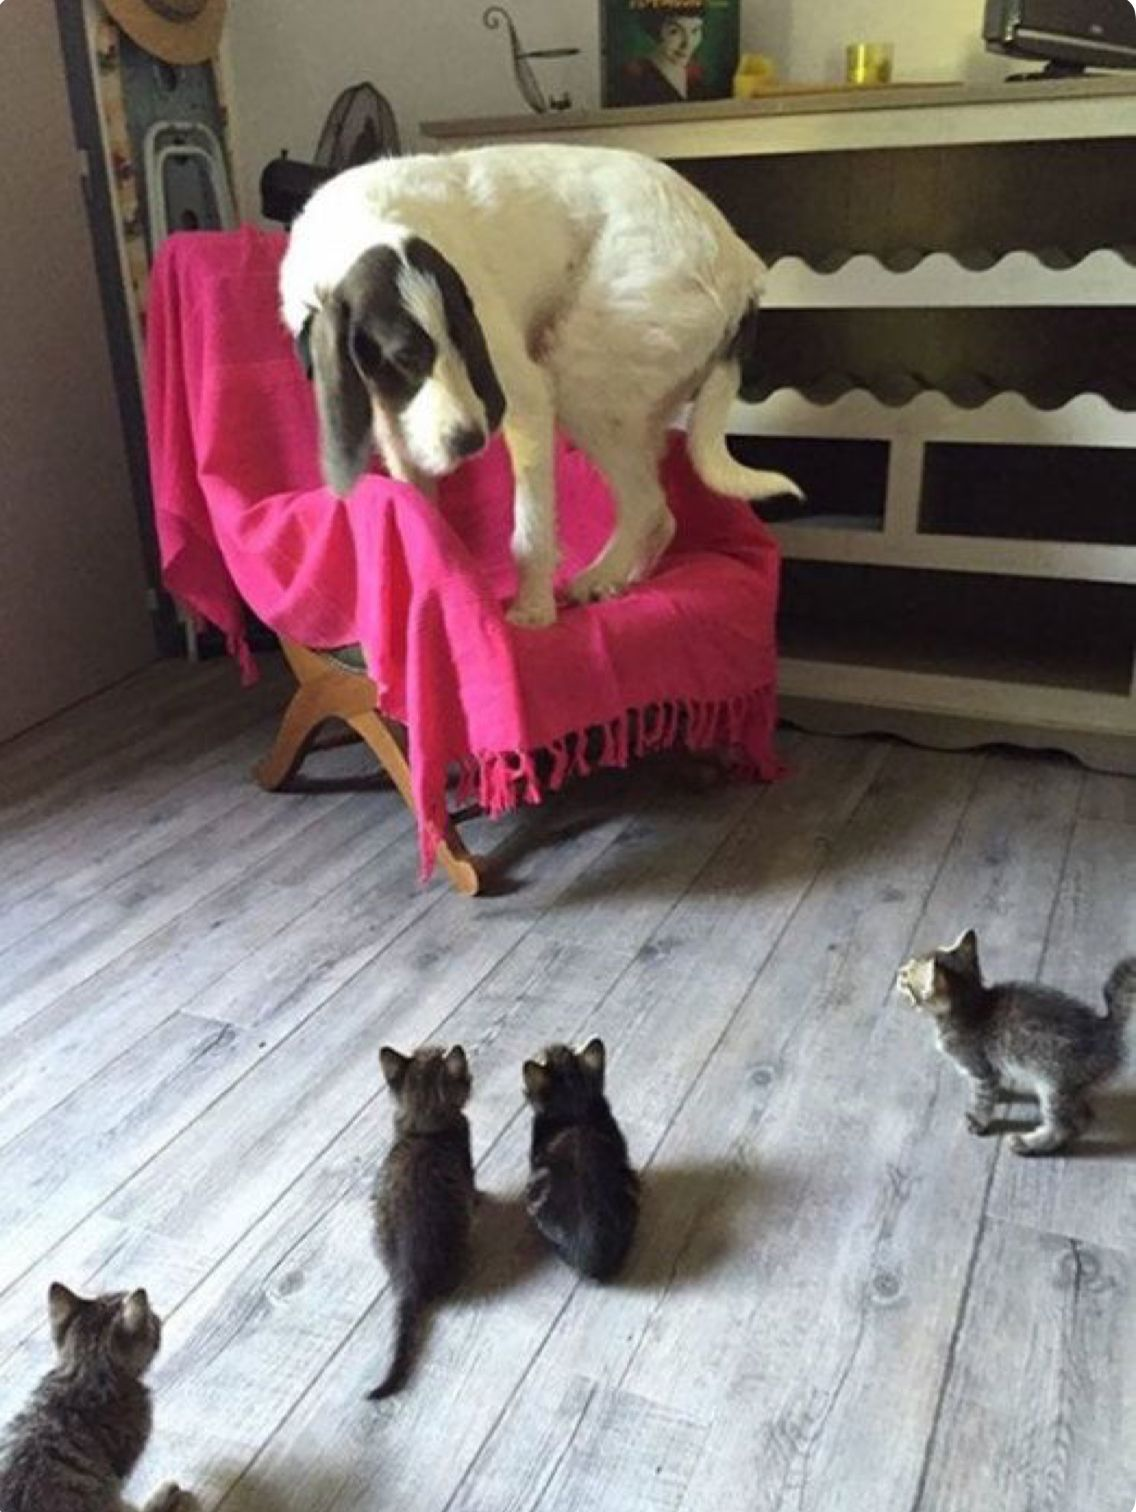 Pin By Brianne Jones On Cats Kittens Funny Cute Animals Funny Animal Pictures